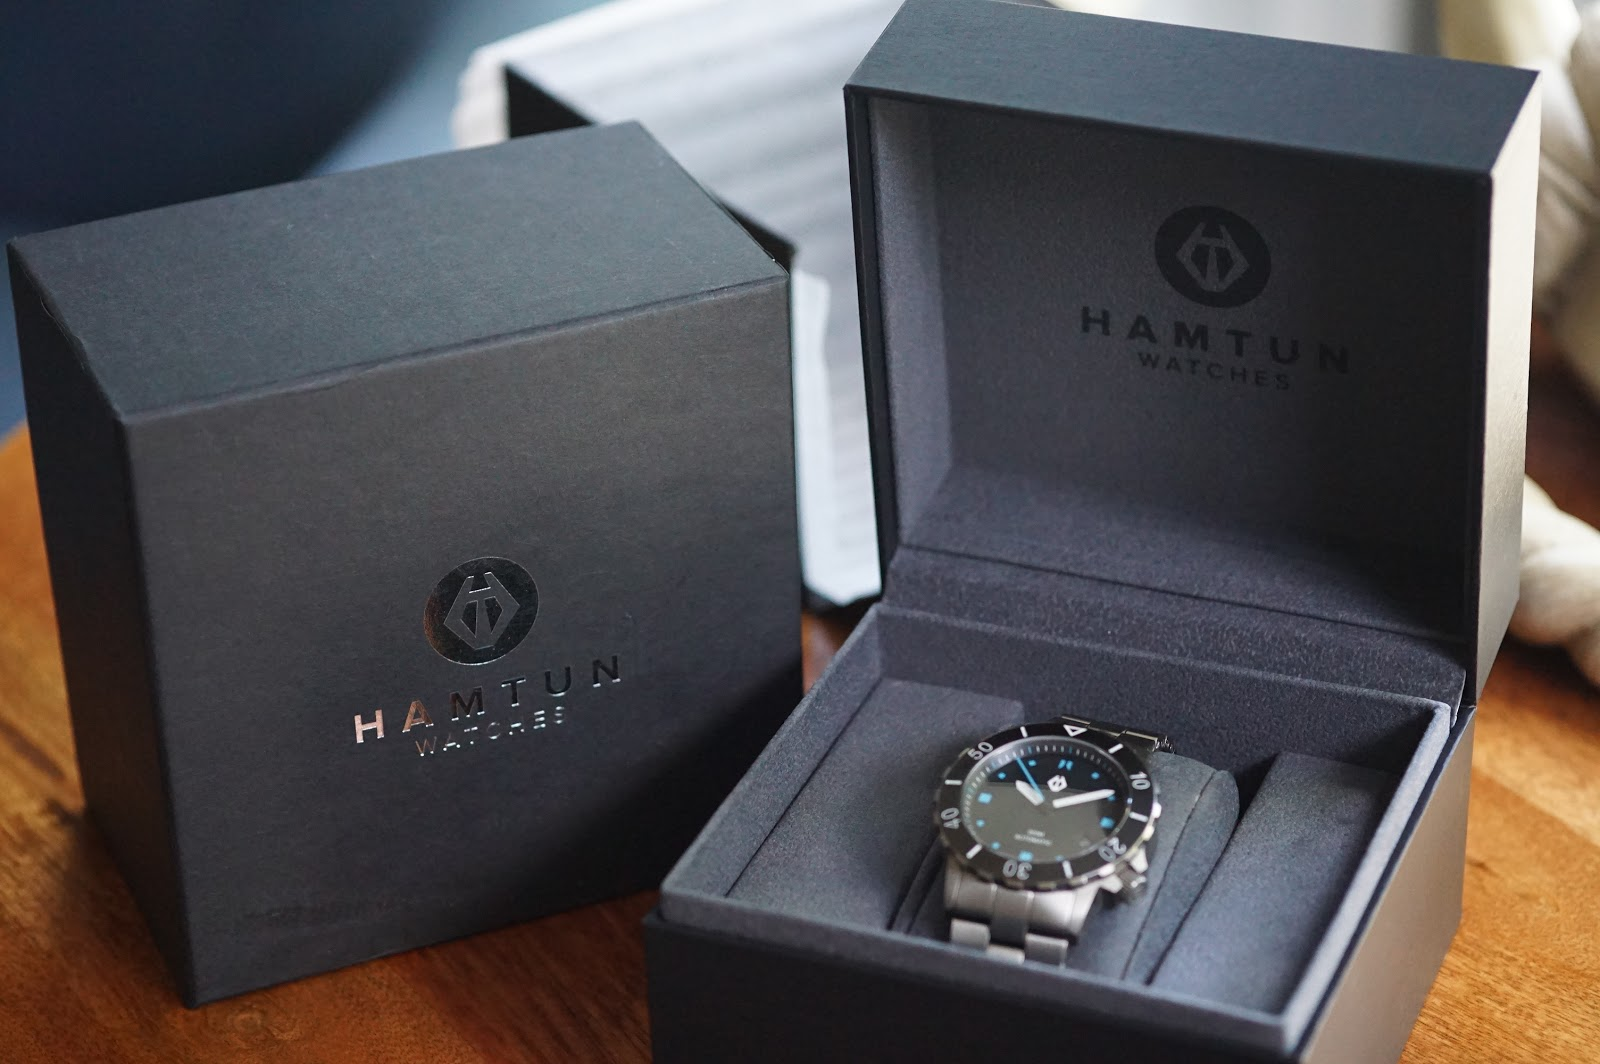 Hamtun H1 packaging